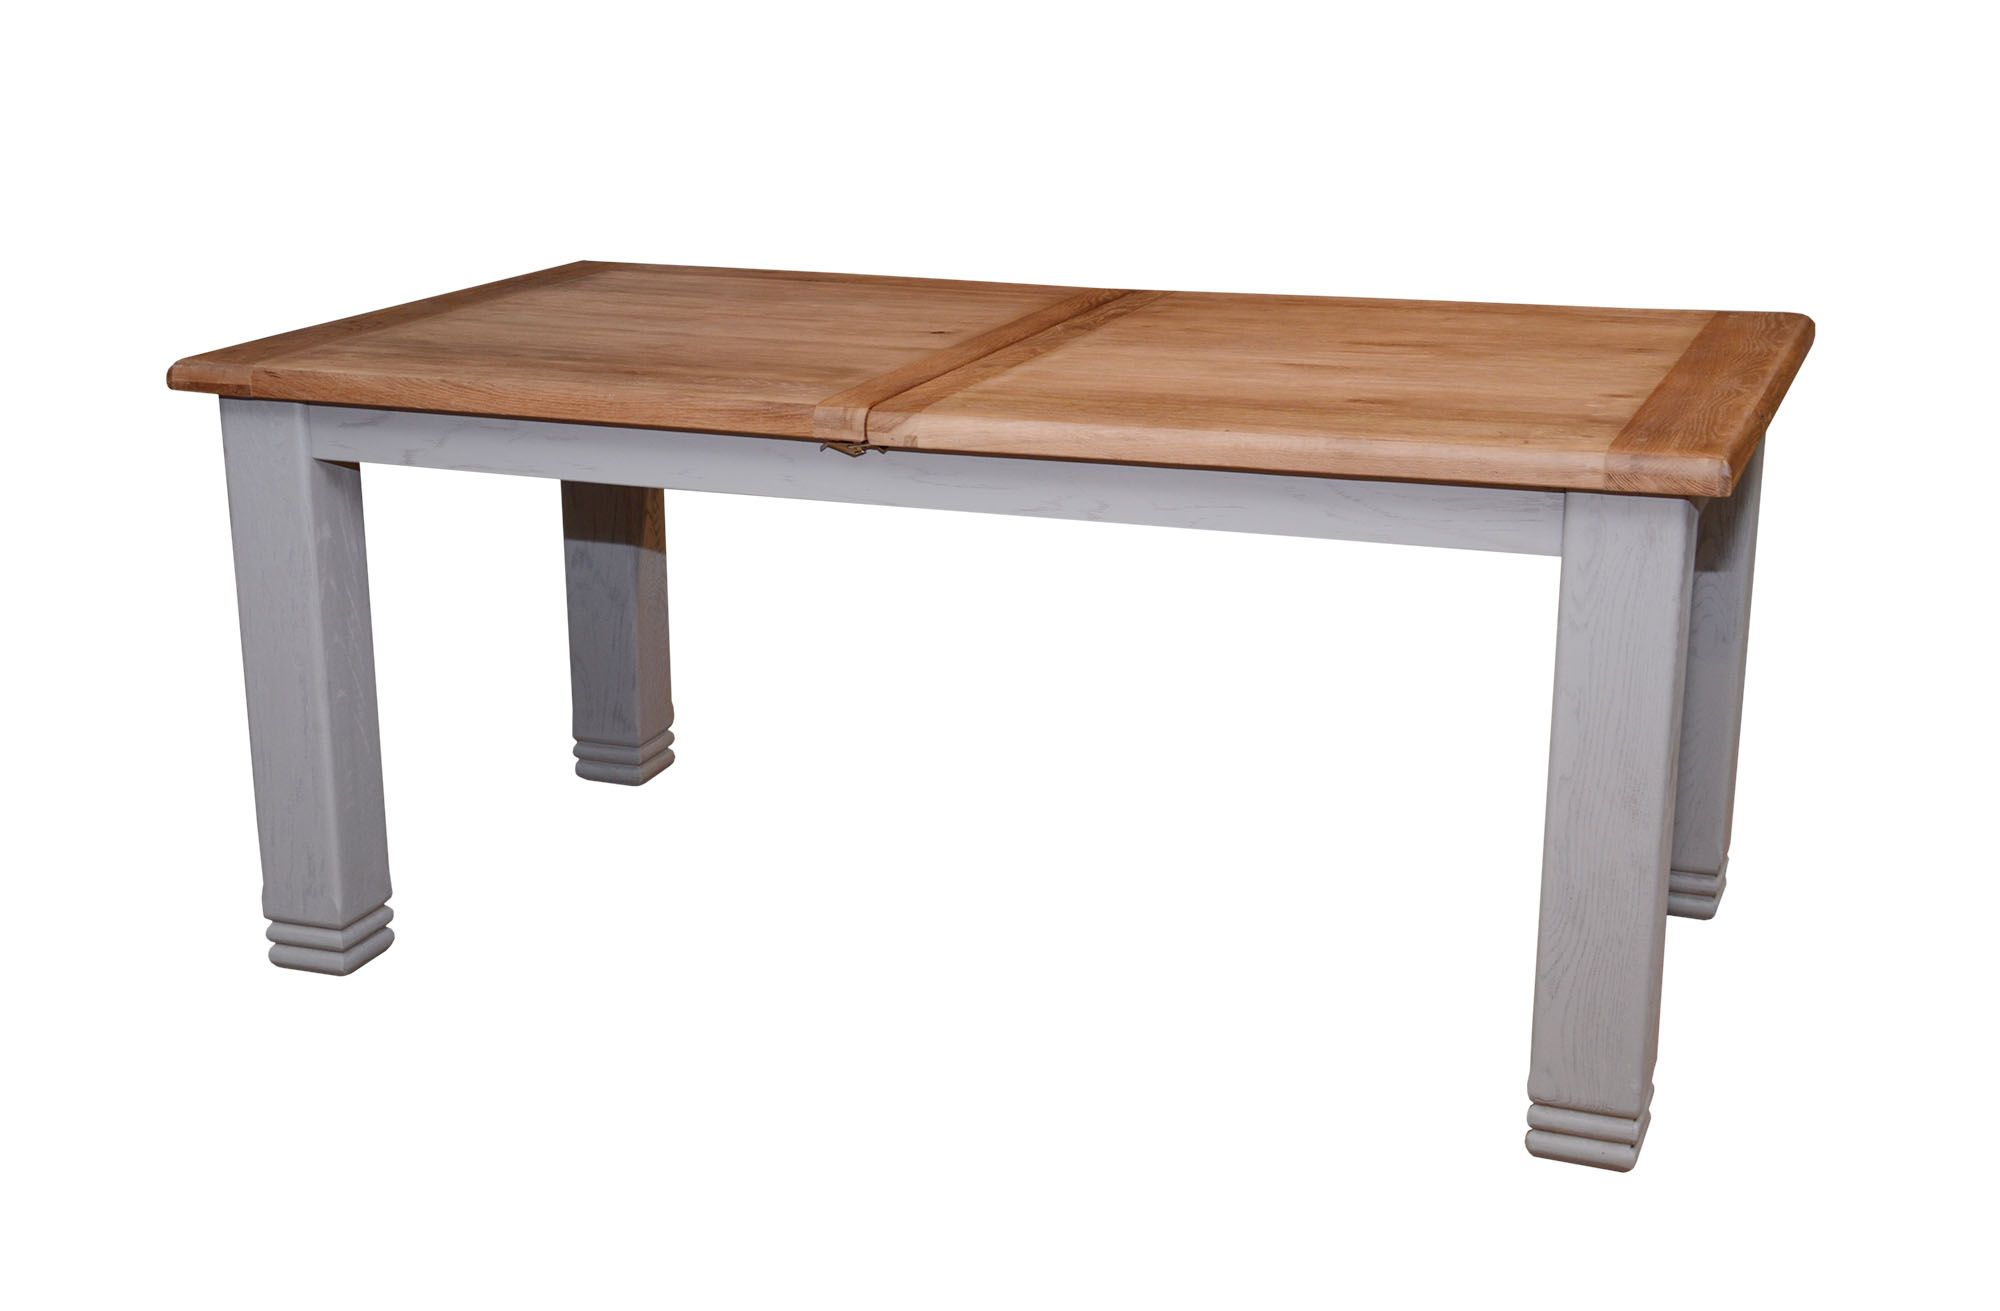 Aquitane weathered oak 6 8 person extending dining table for Meubles kilkenny